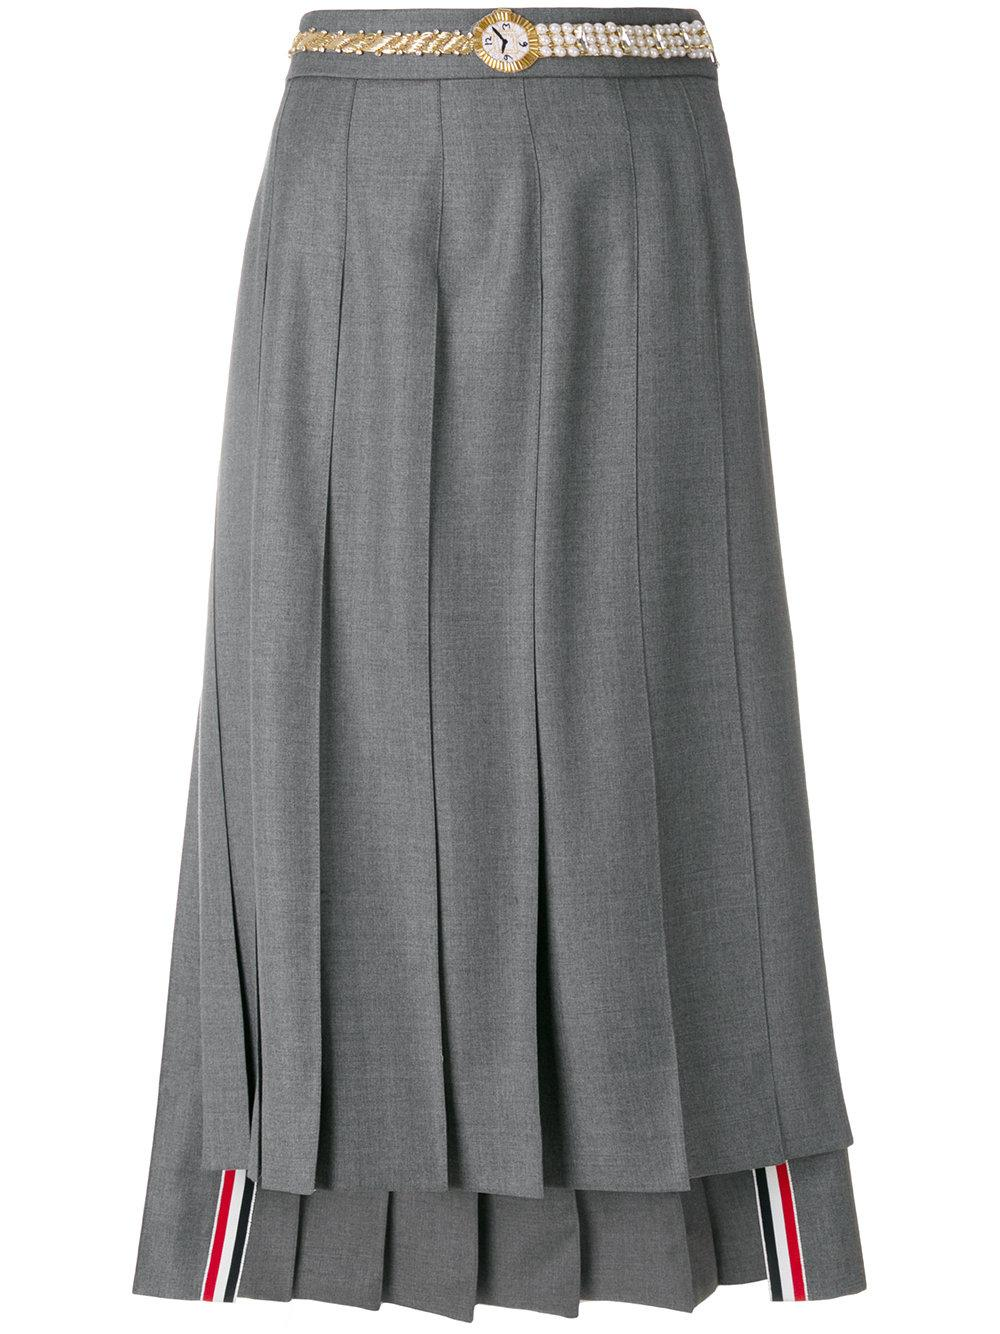 7b6a148b6 Thom Browne Below Knee Dropped Back Pleated Skirt With Belt Applique ...